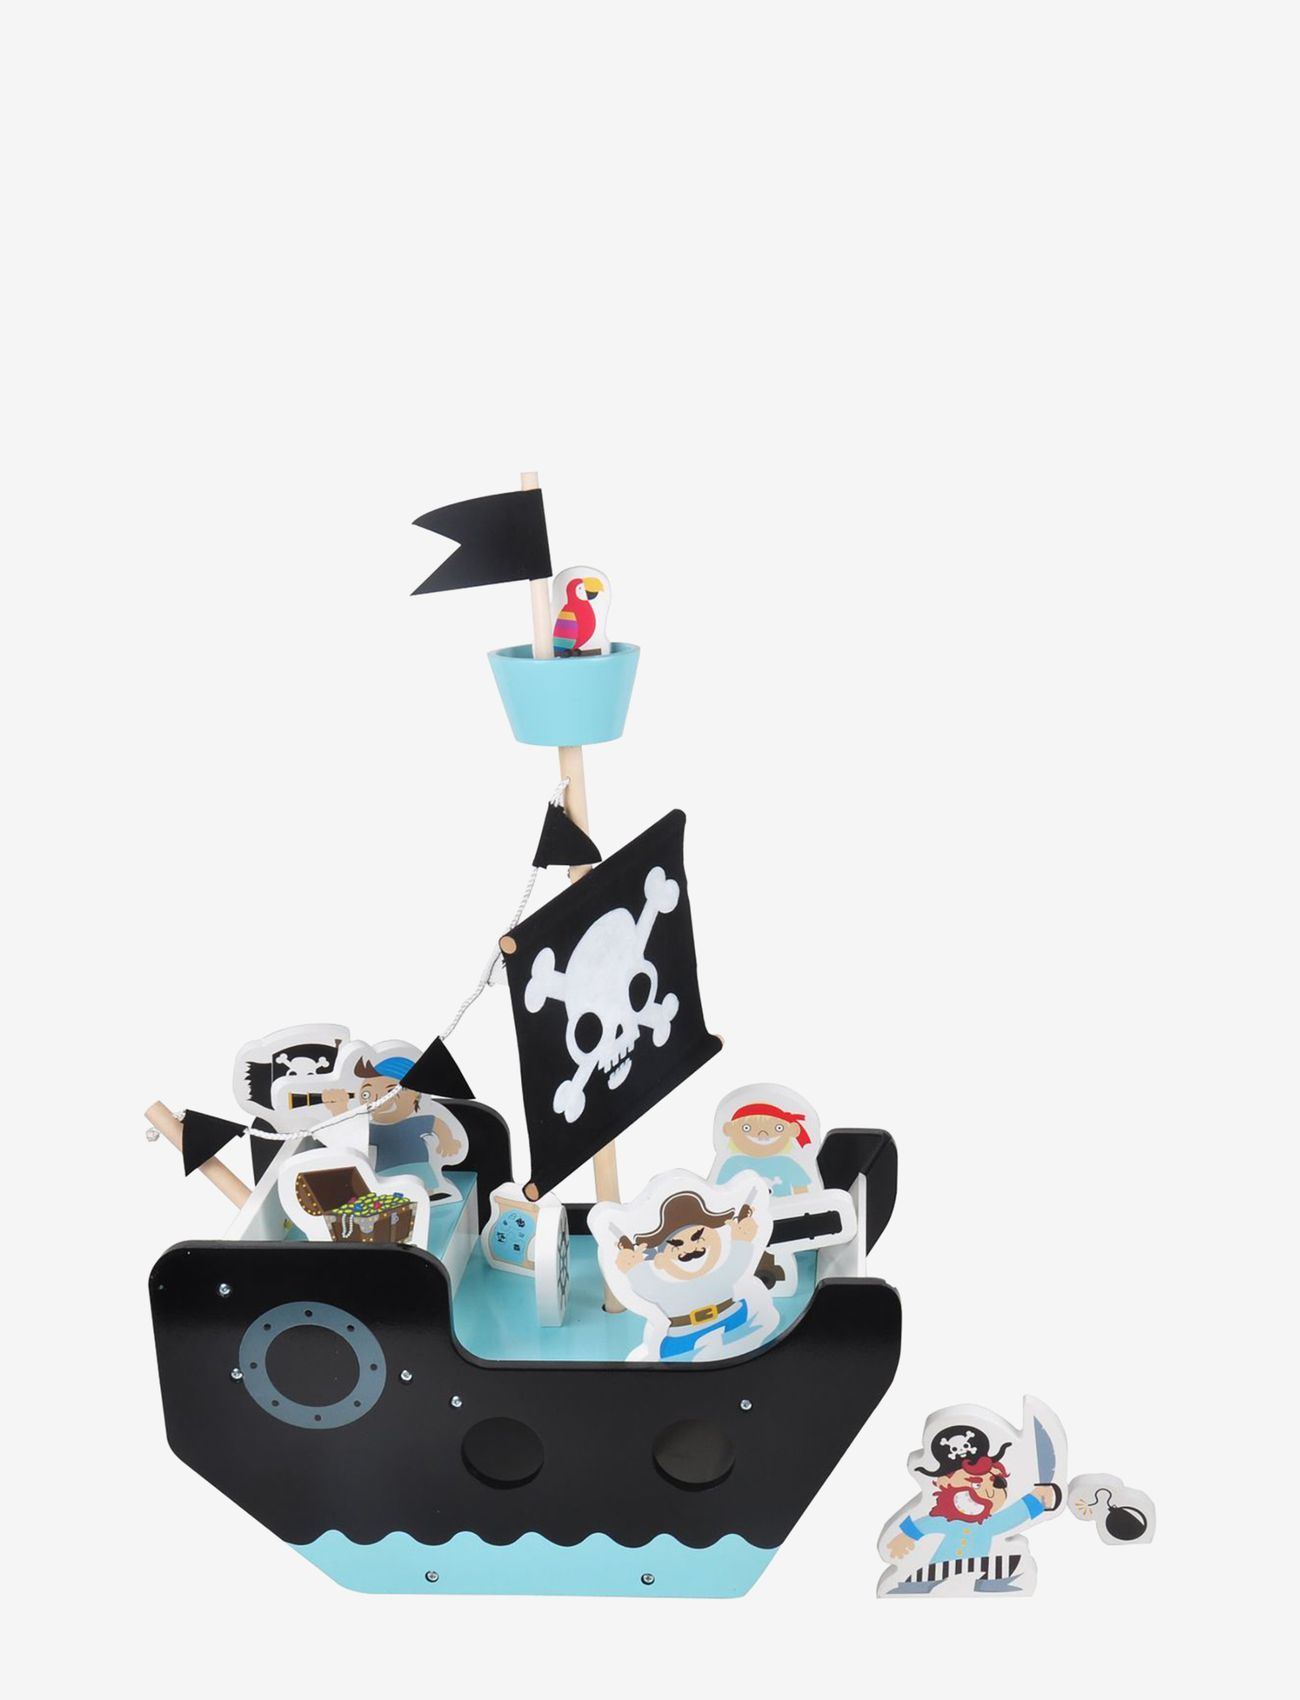 Pirate Ship with 11 figures